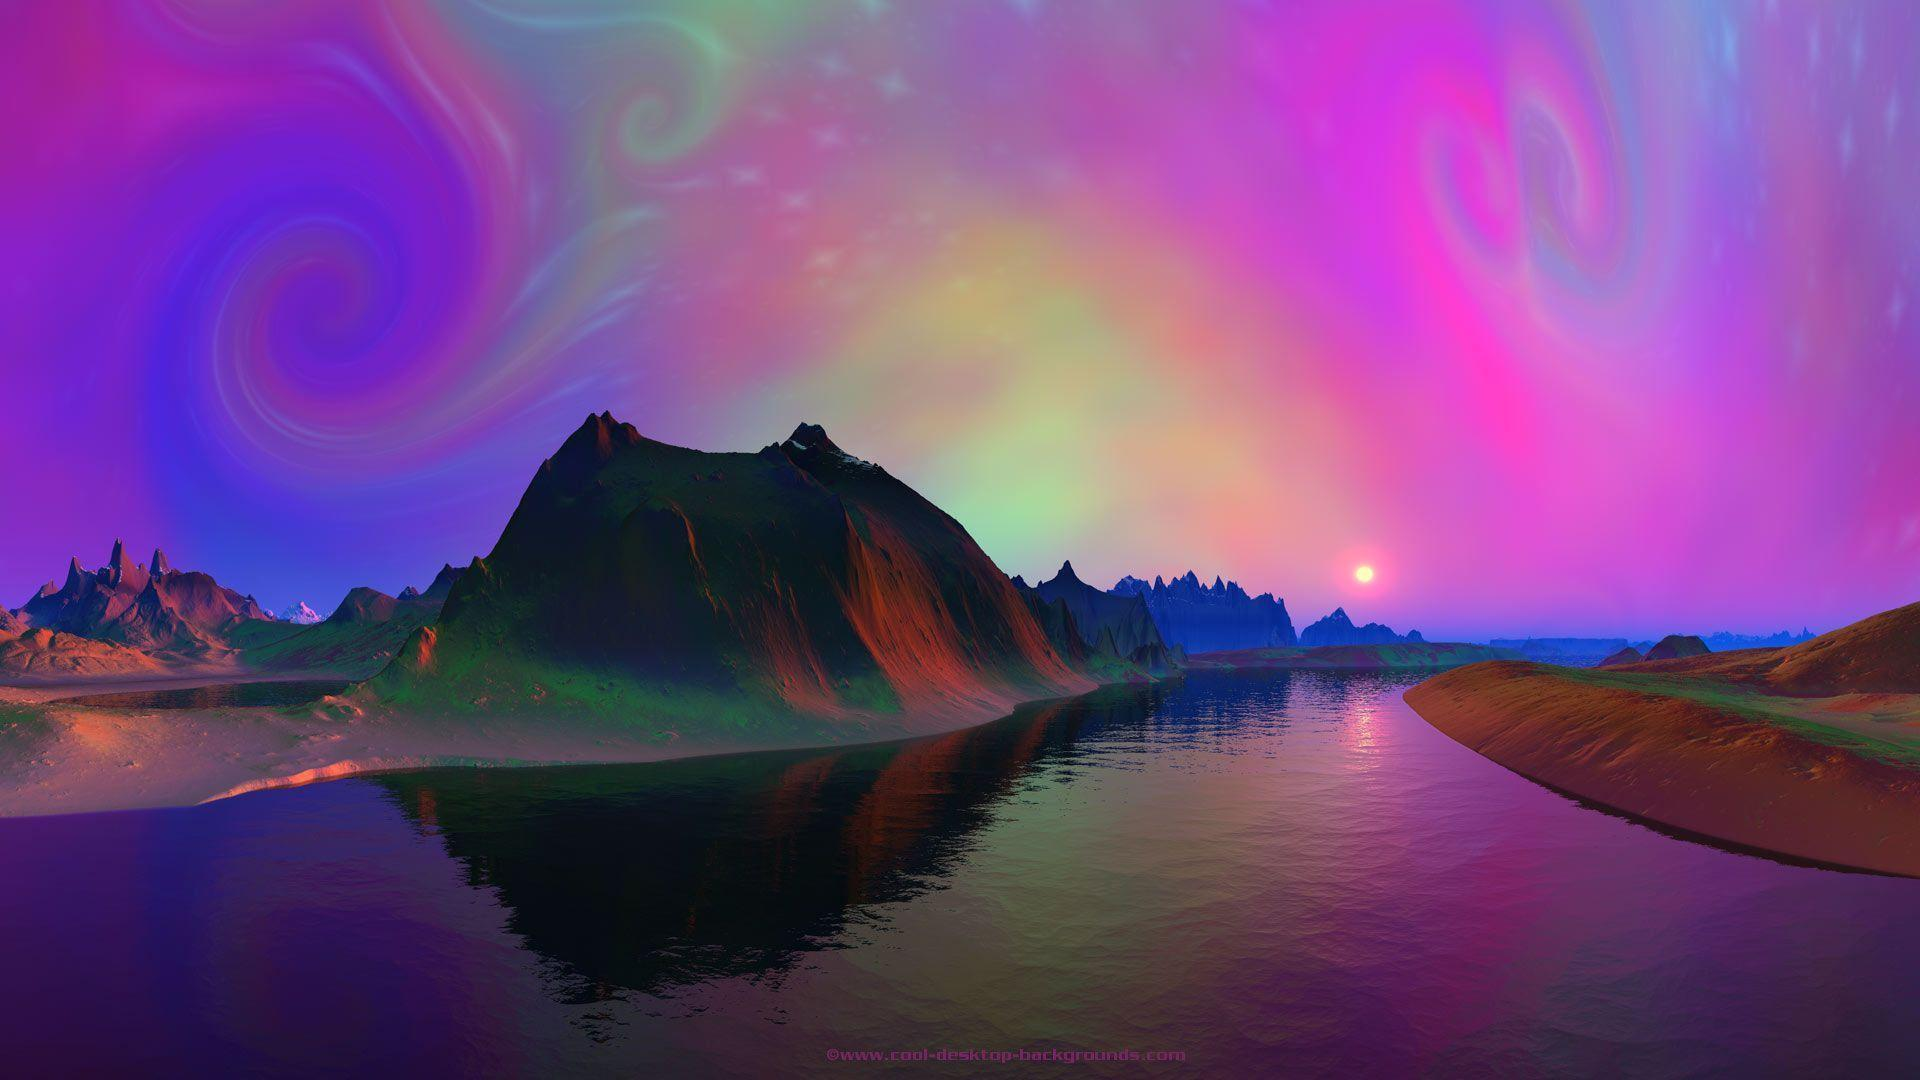 Psychedelic Desktop Backgrounds - Wallpaper Cave